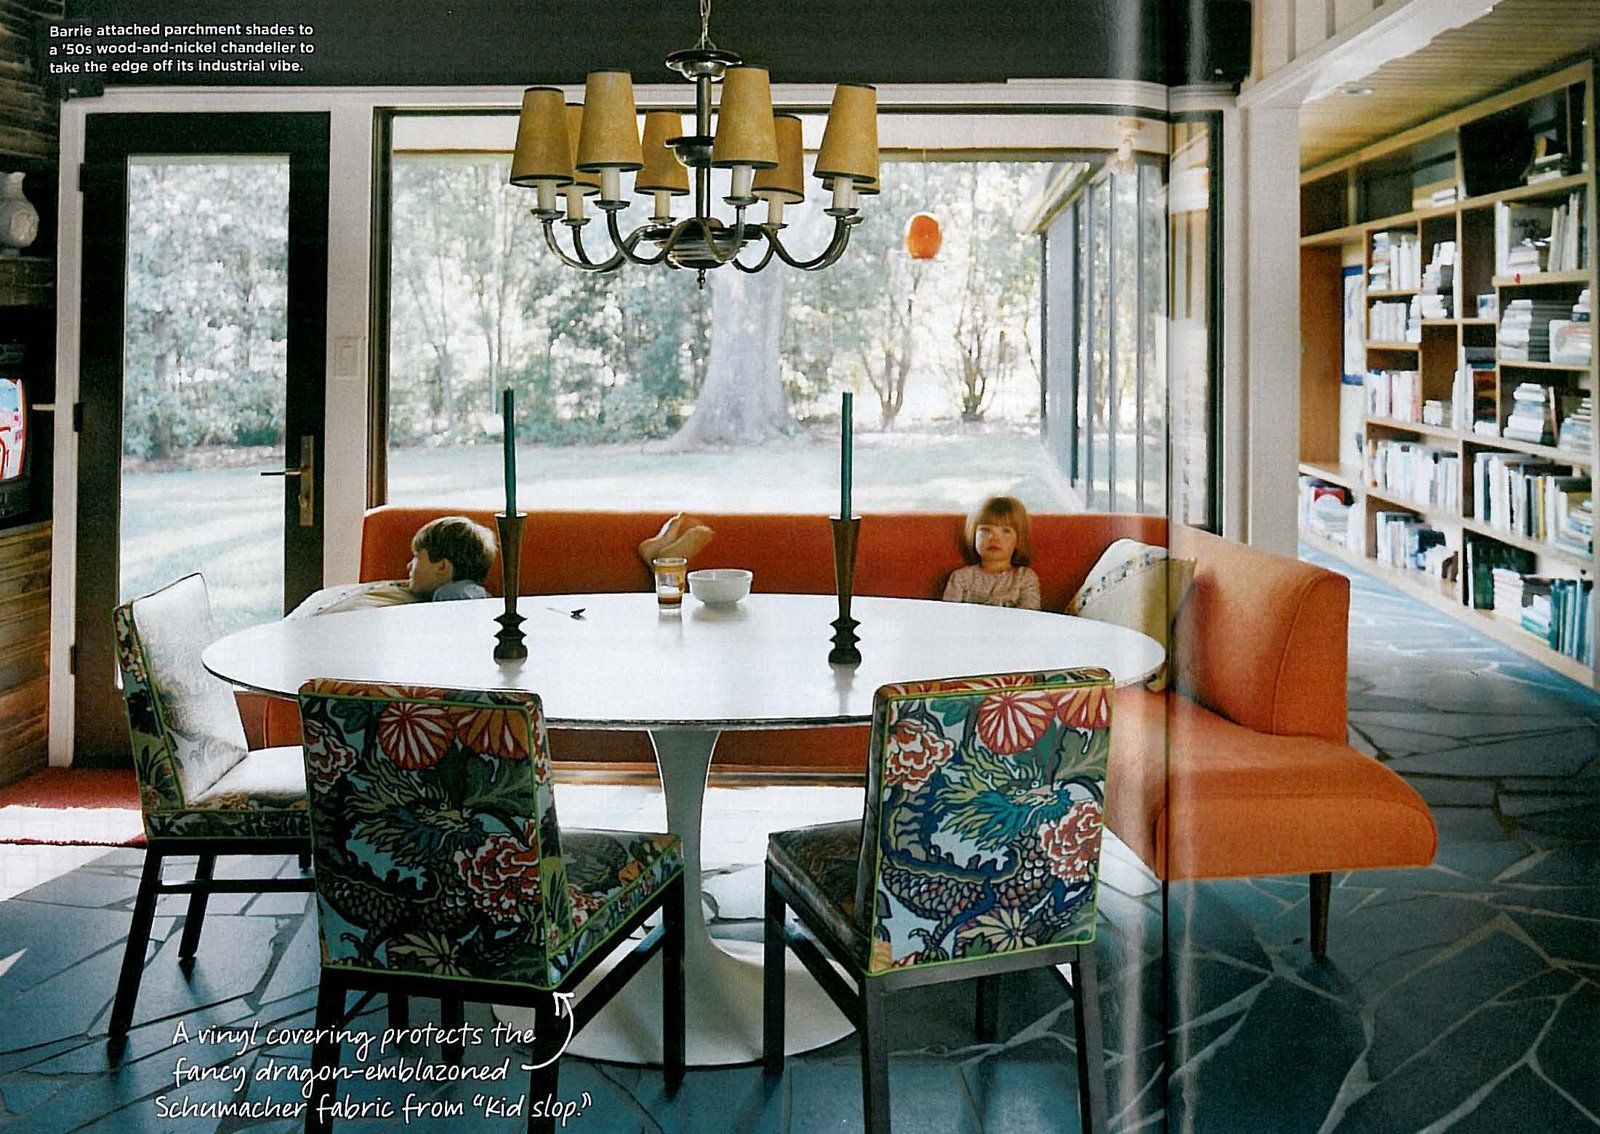 Ordinaire Always Liked This Home Tour (designer Barrie Benson, Charlotte, NC) In  Domino Mag (circa 2007). Love The Chiang Mai Dragon Fabric By Schumacher.